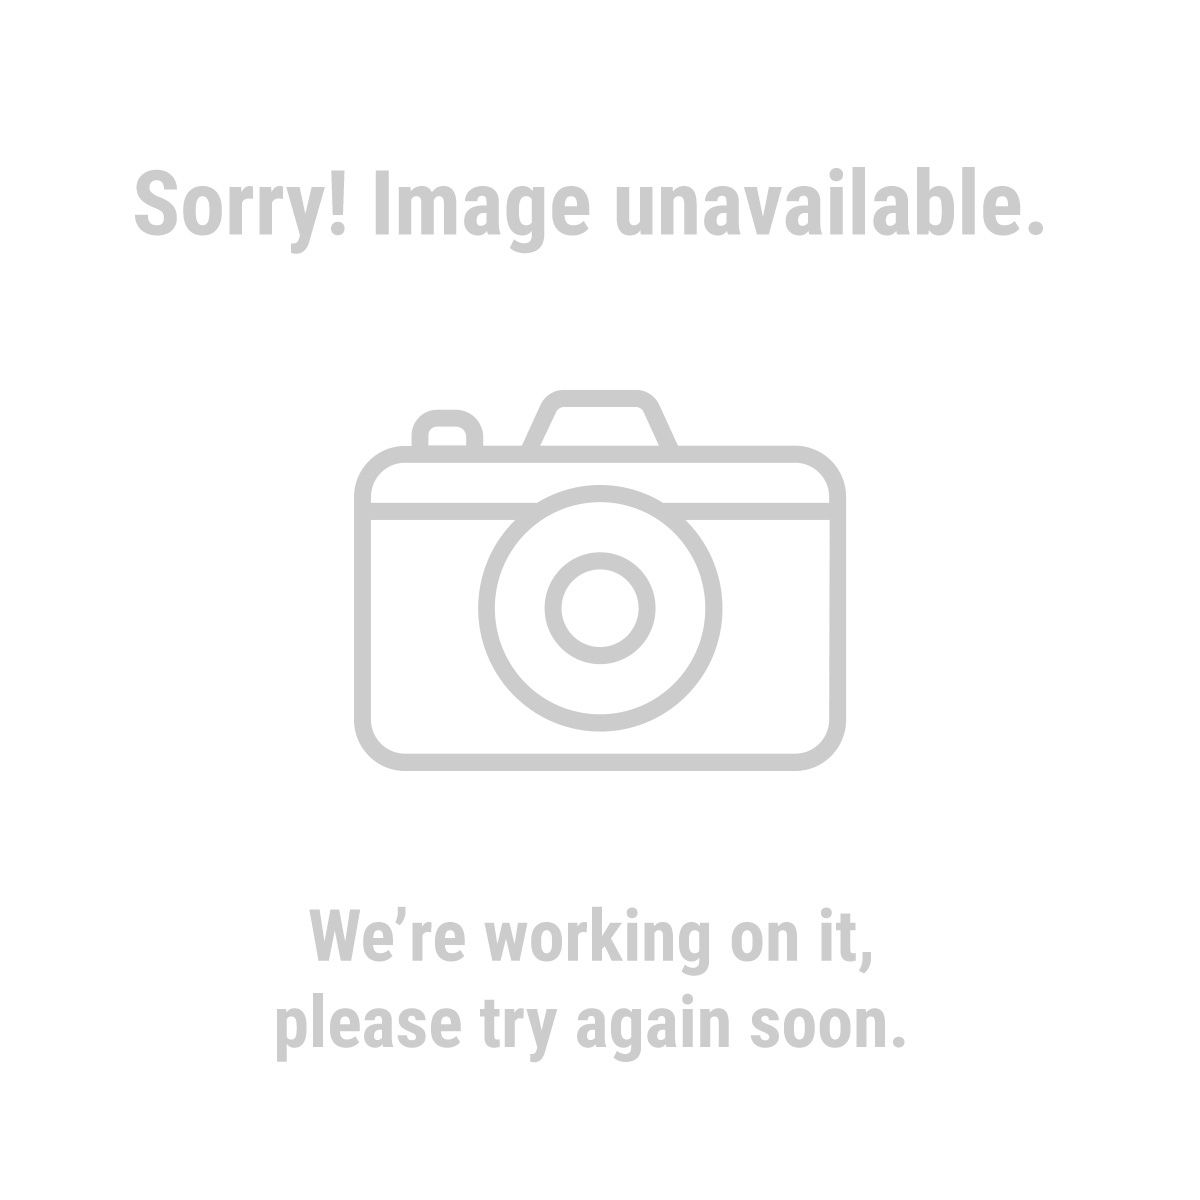 Haul-Master 99721 400 Lb. Receiver-Mount Motorcycle Carrier